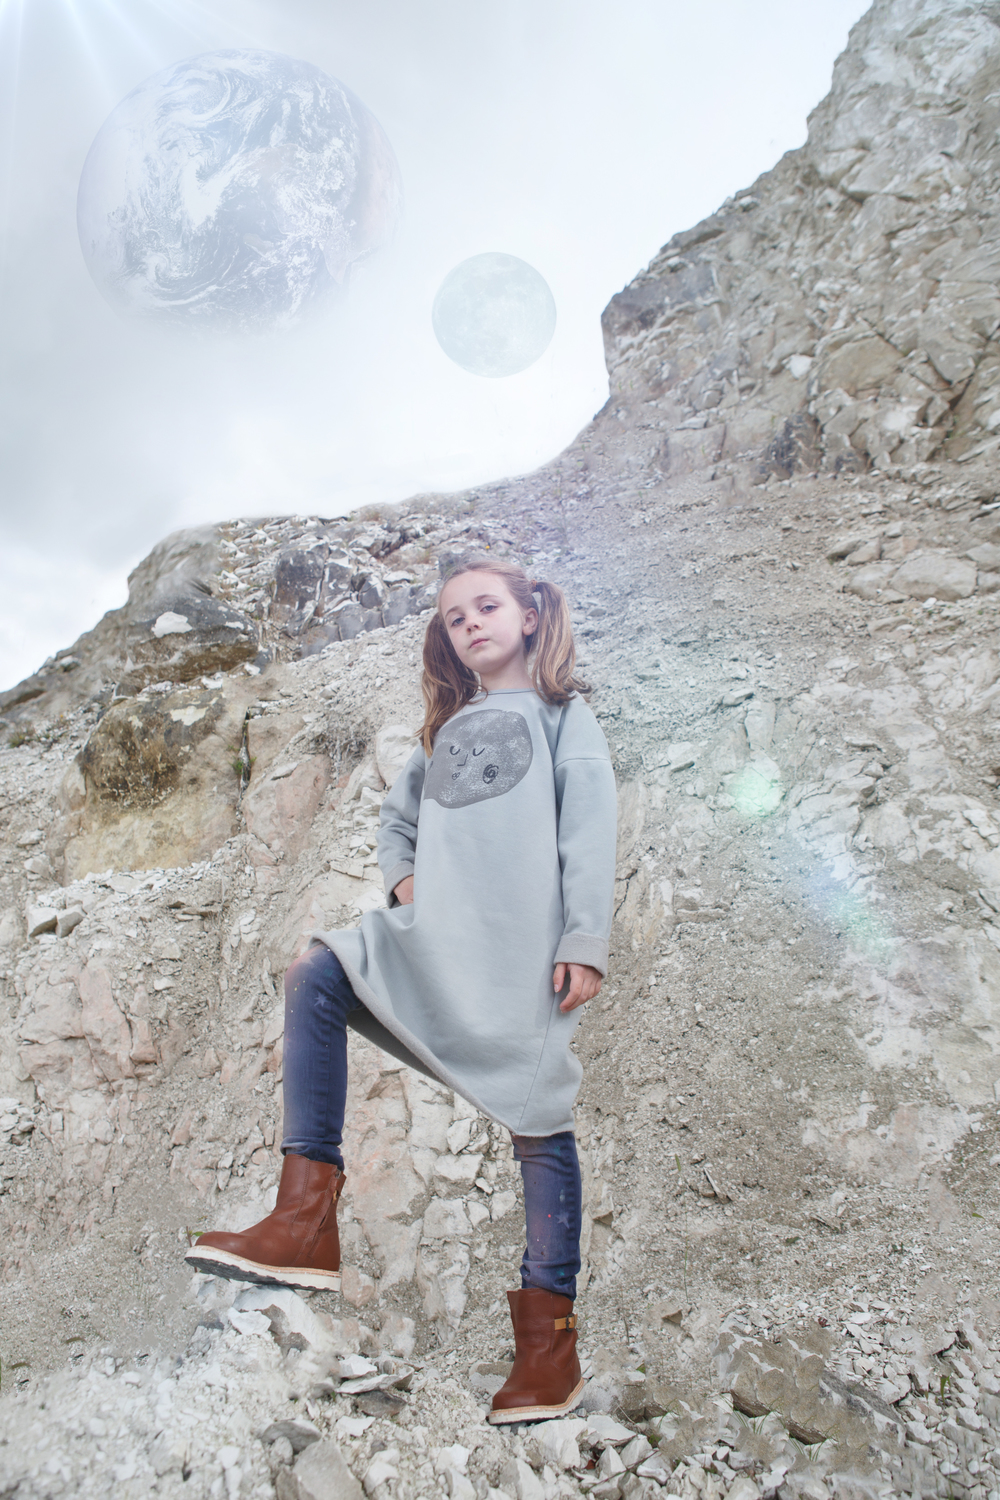 Moon print grey dress, Bobo Choses. Star print jeans, Scotch R'Belle. Brown boots, Young Soles.